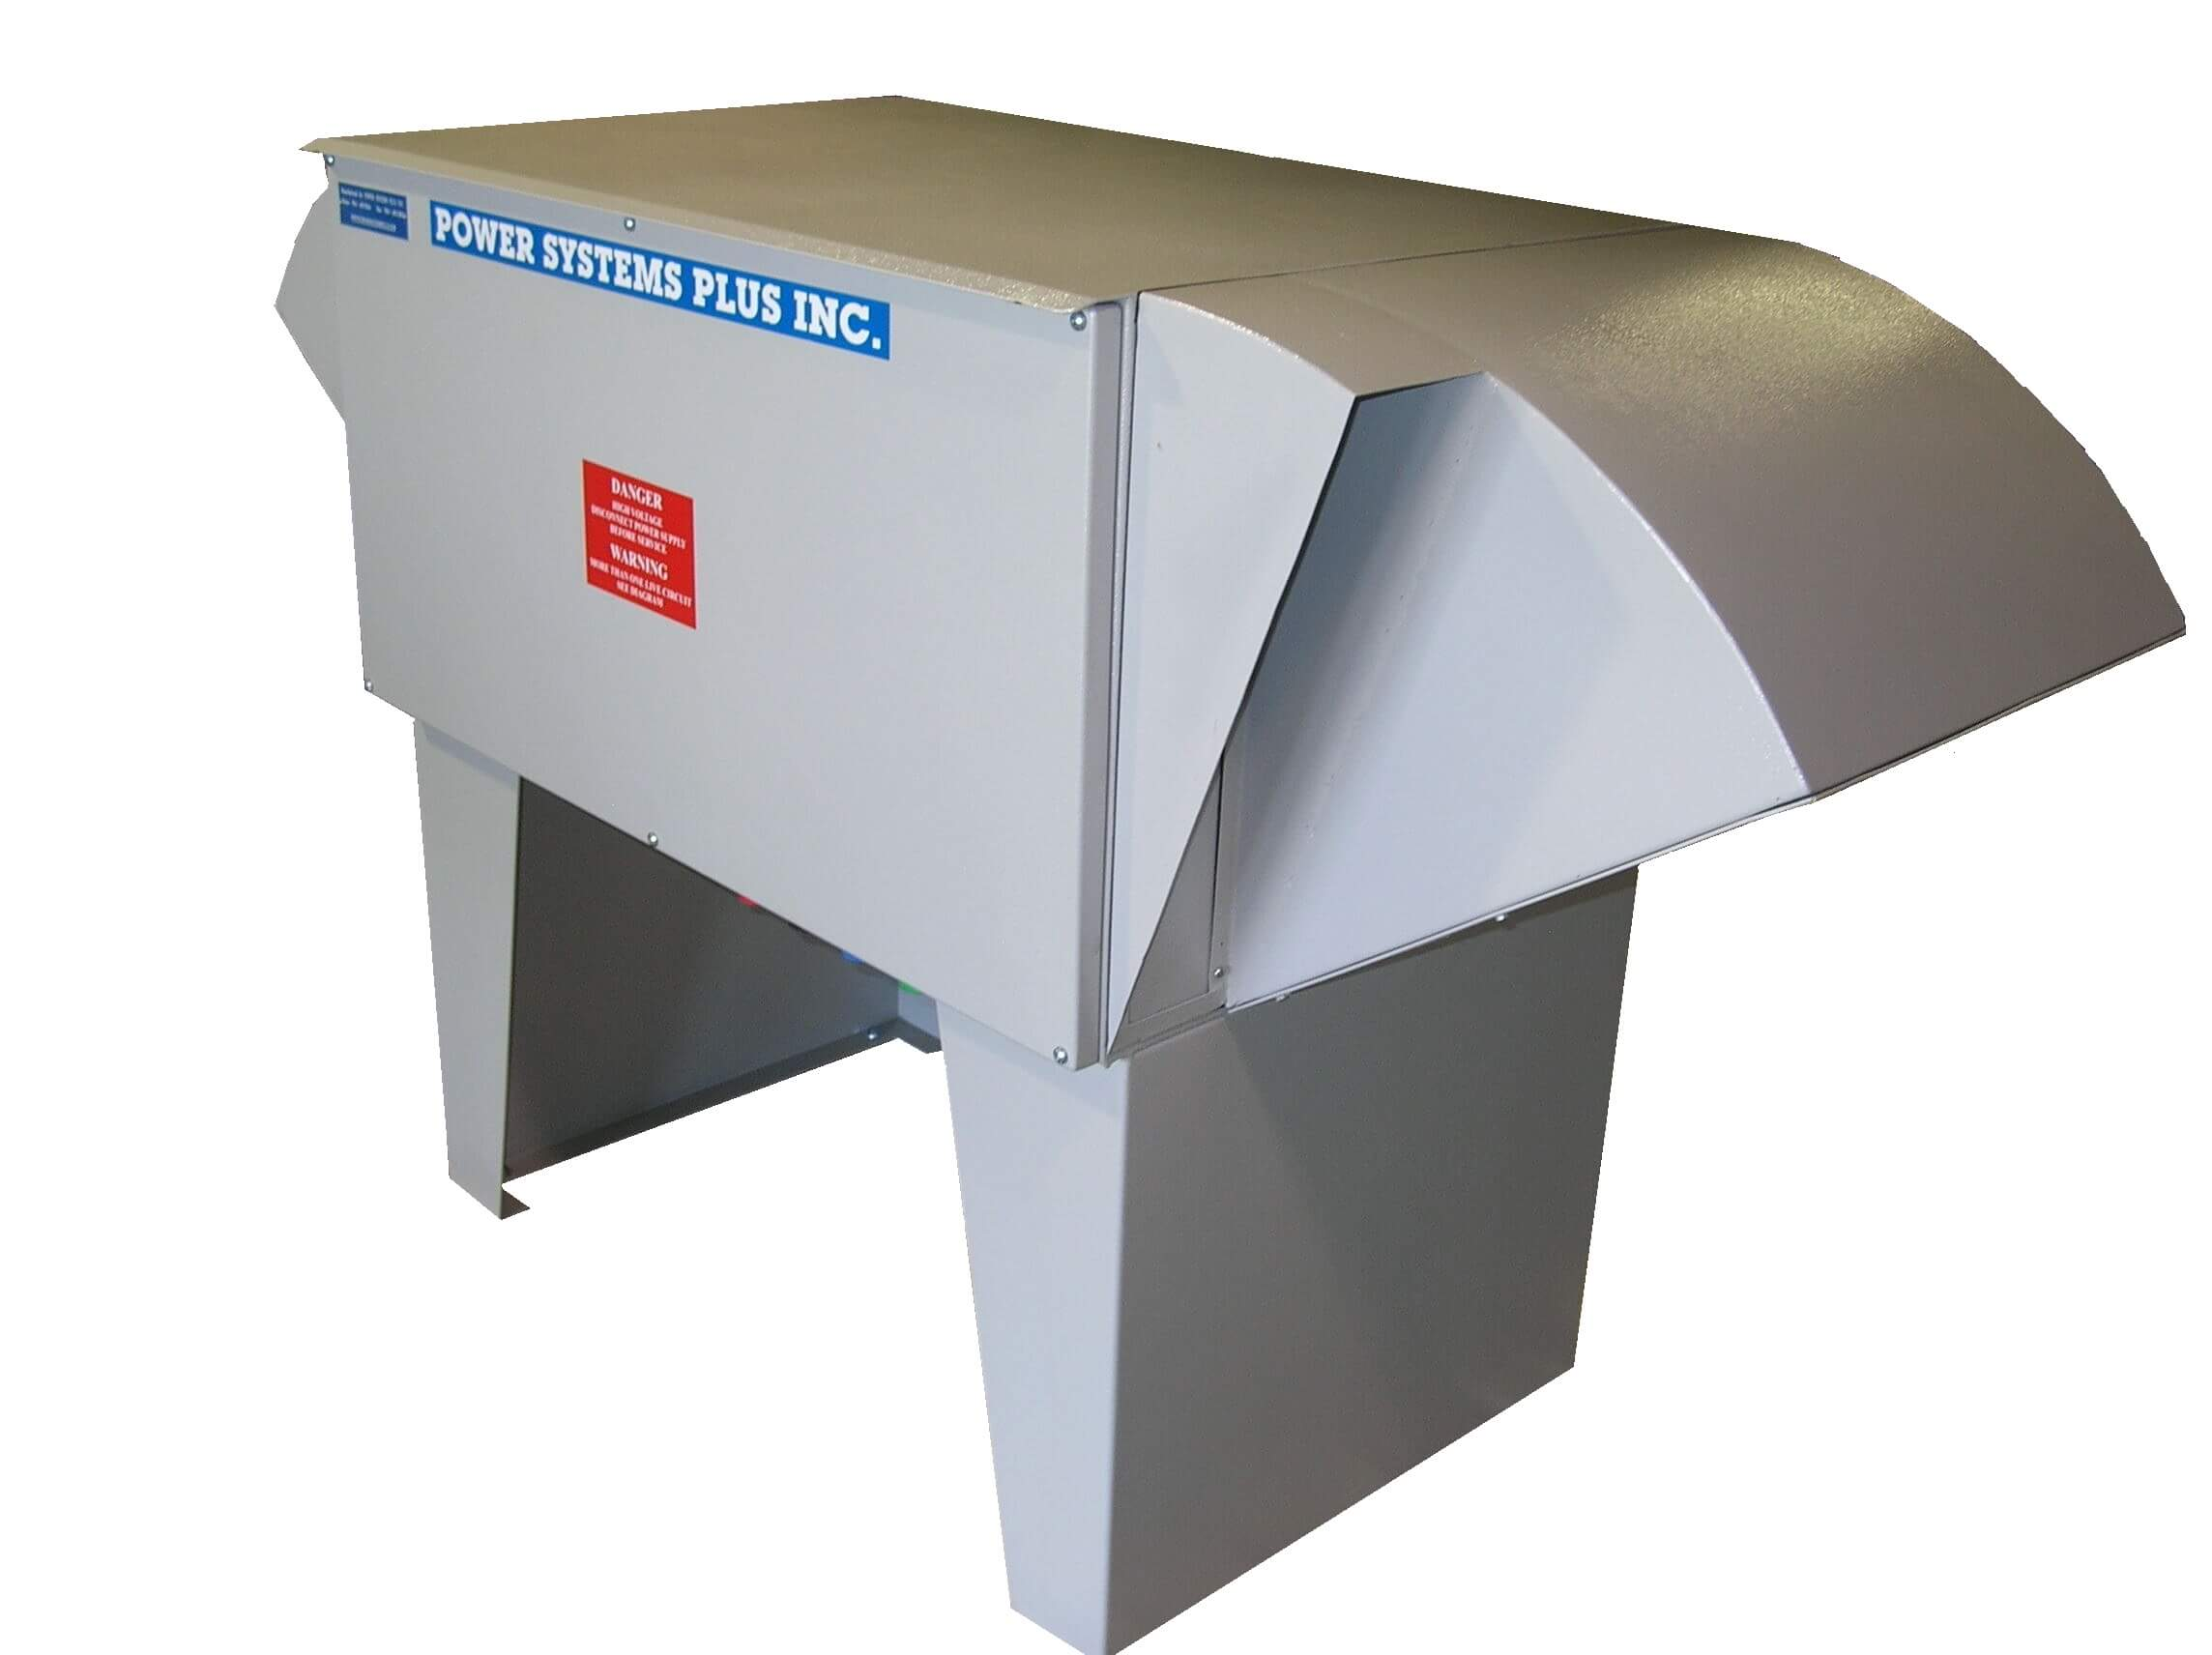 OUTDOORS STATIONARY LOAD BANK